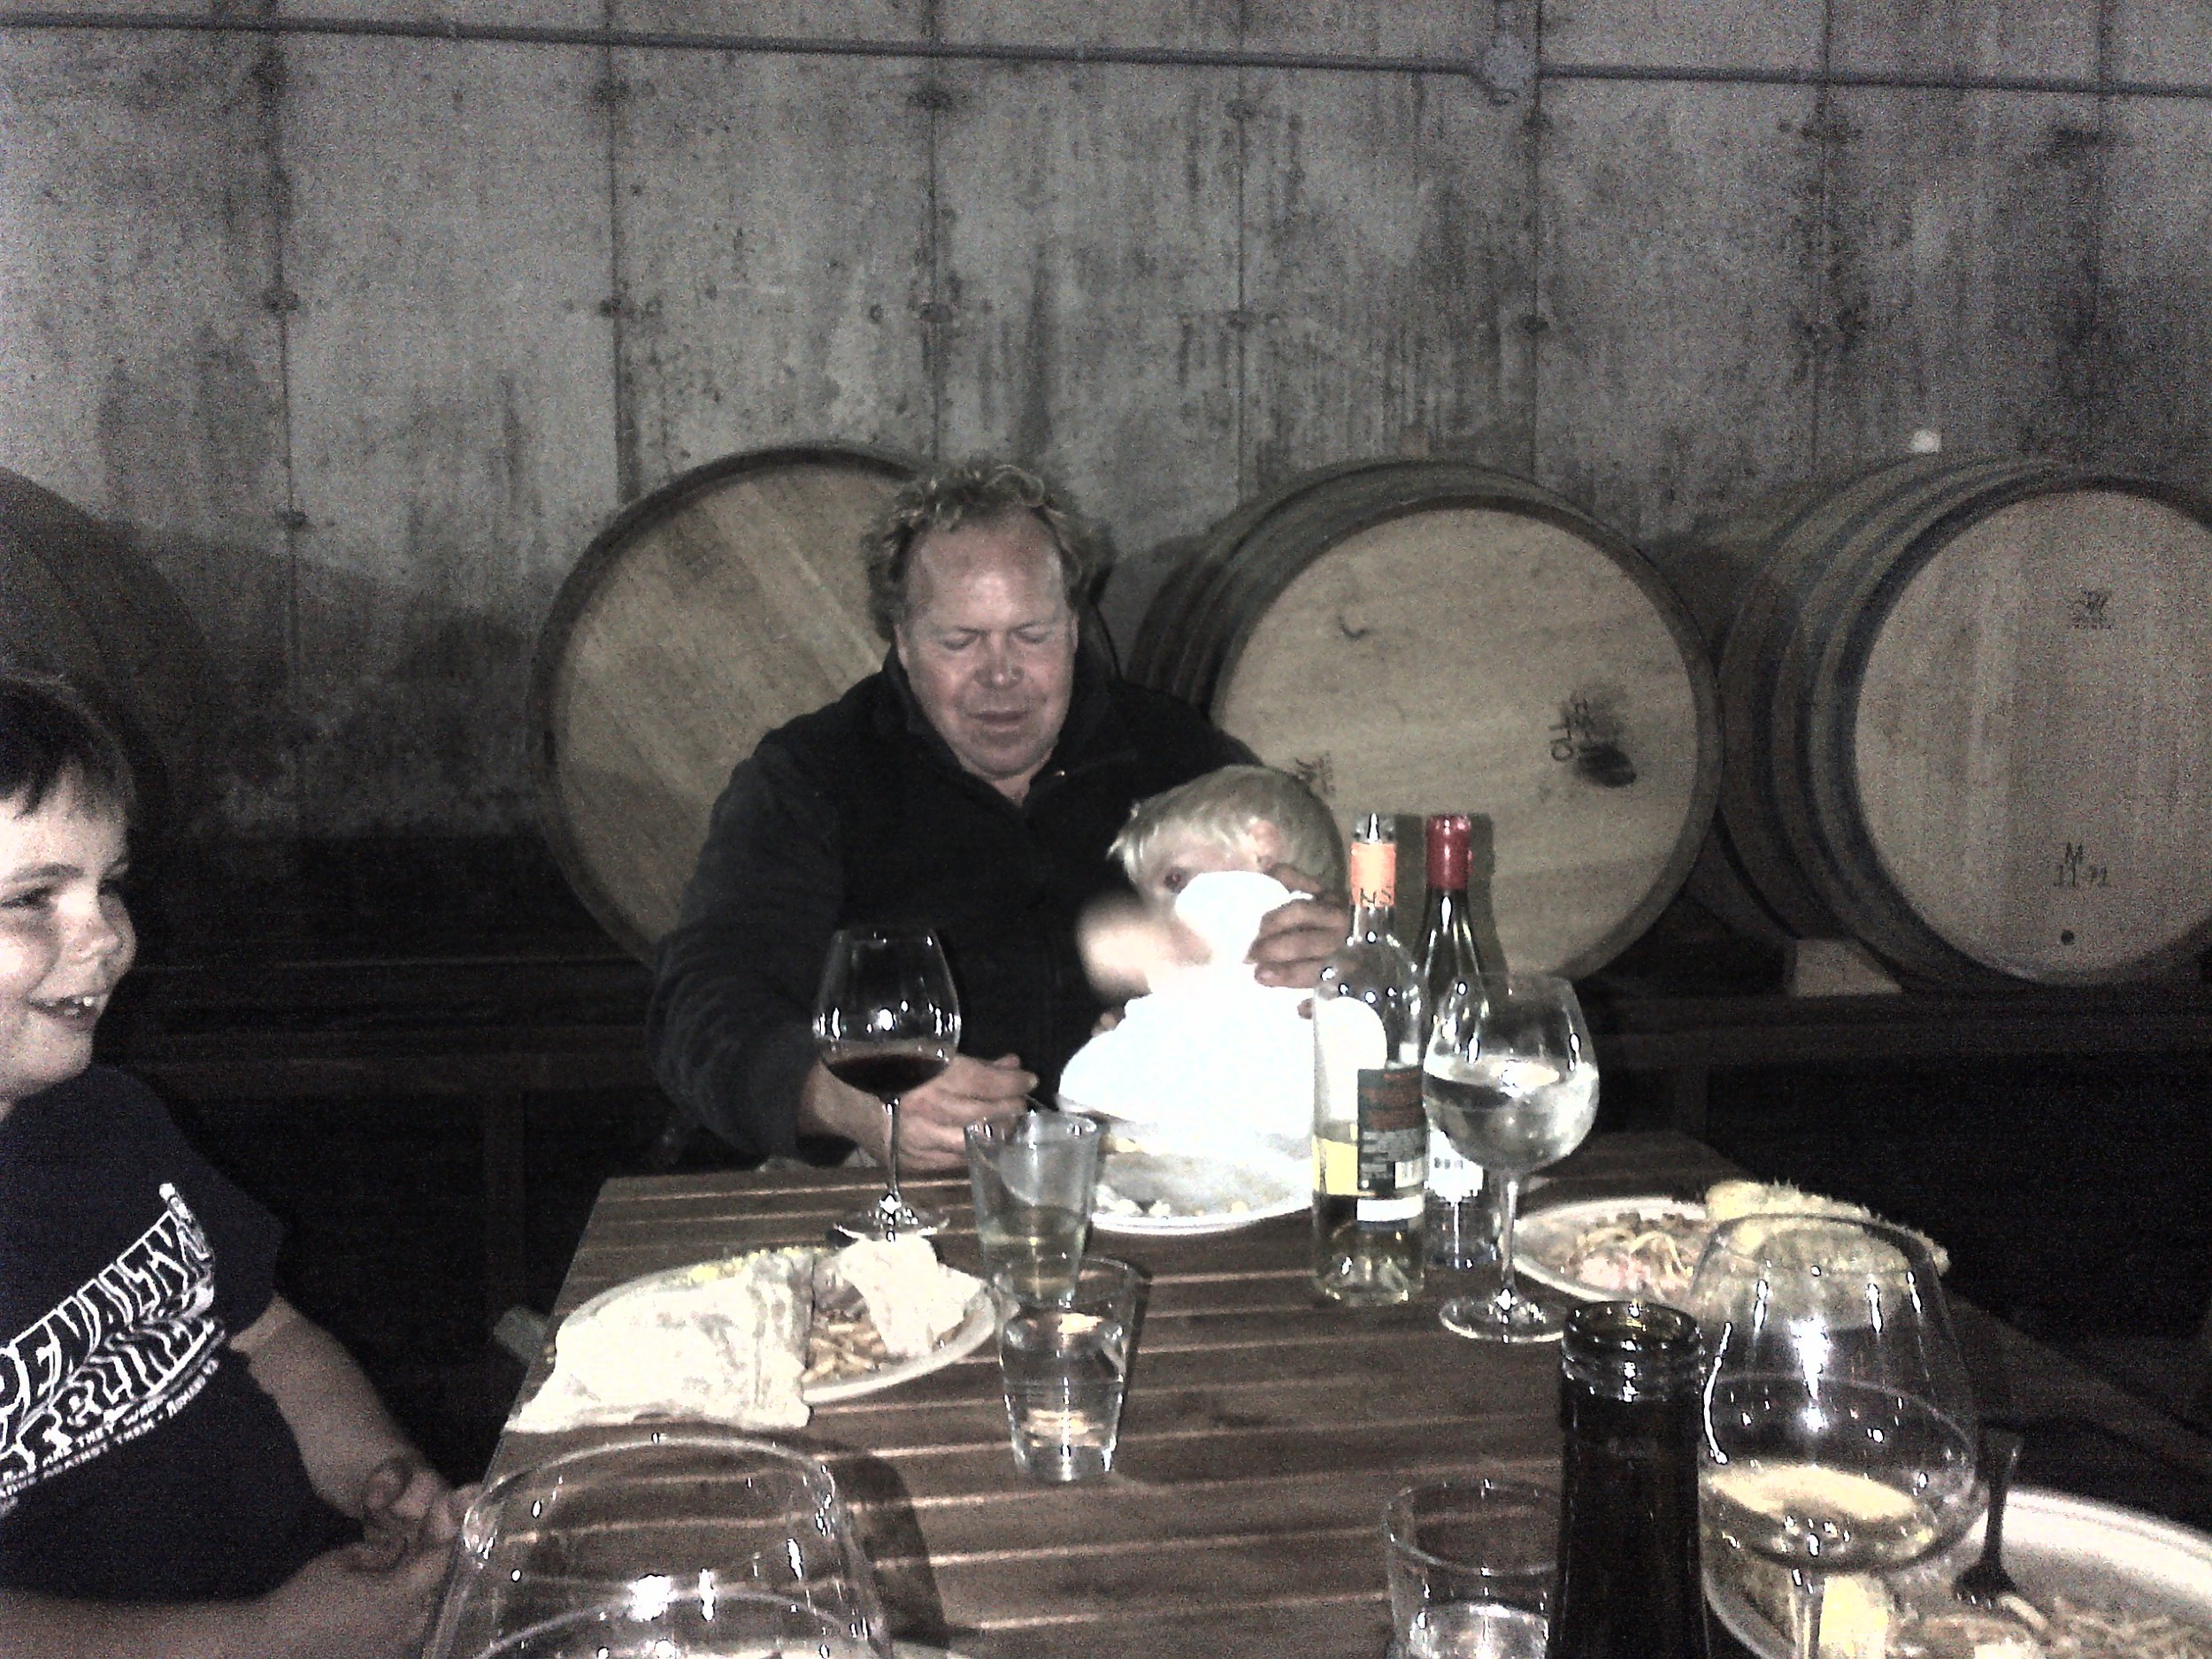 Norm with his two sons at dinner in the barrel chamber.